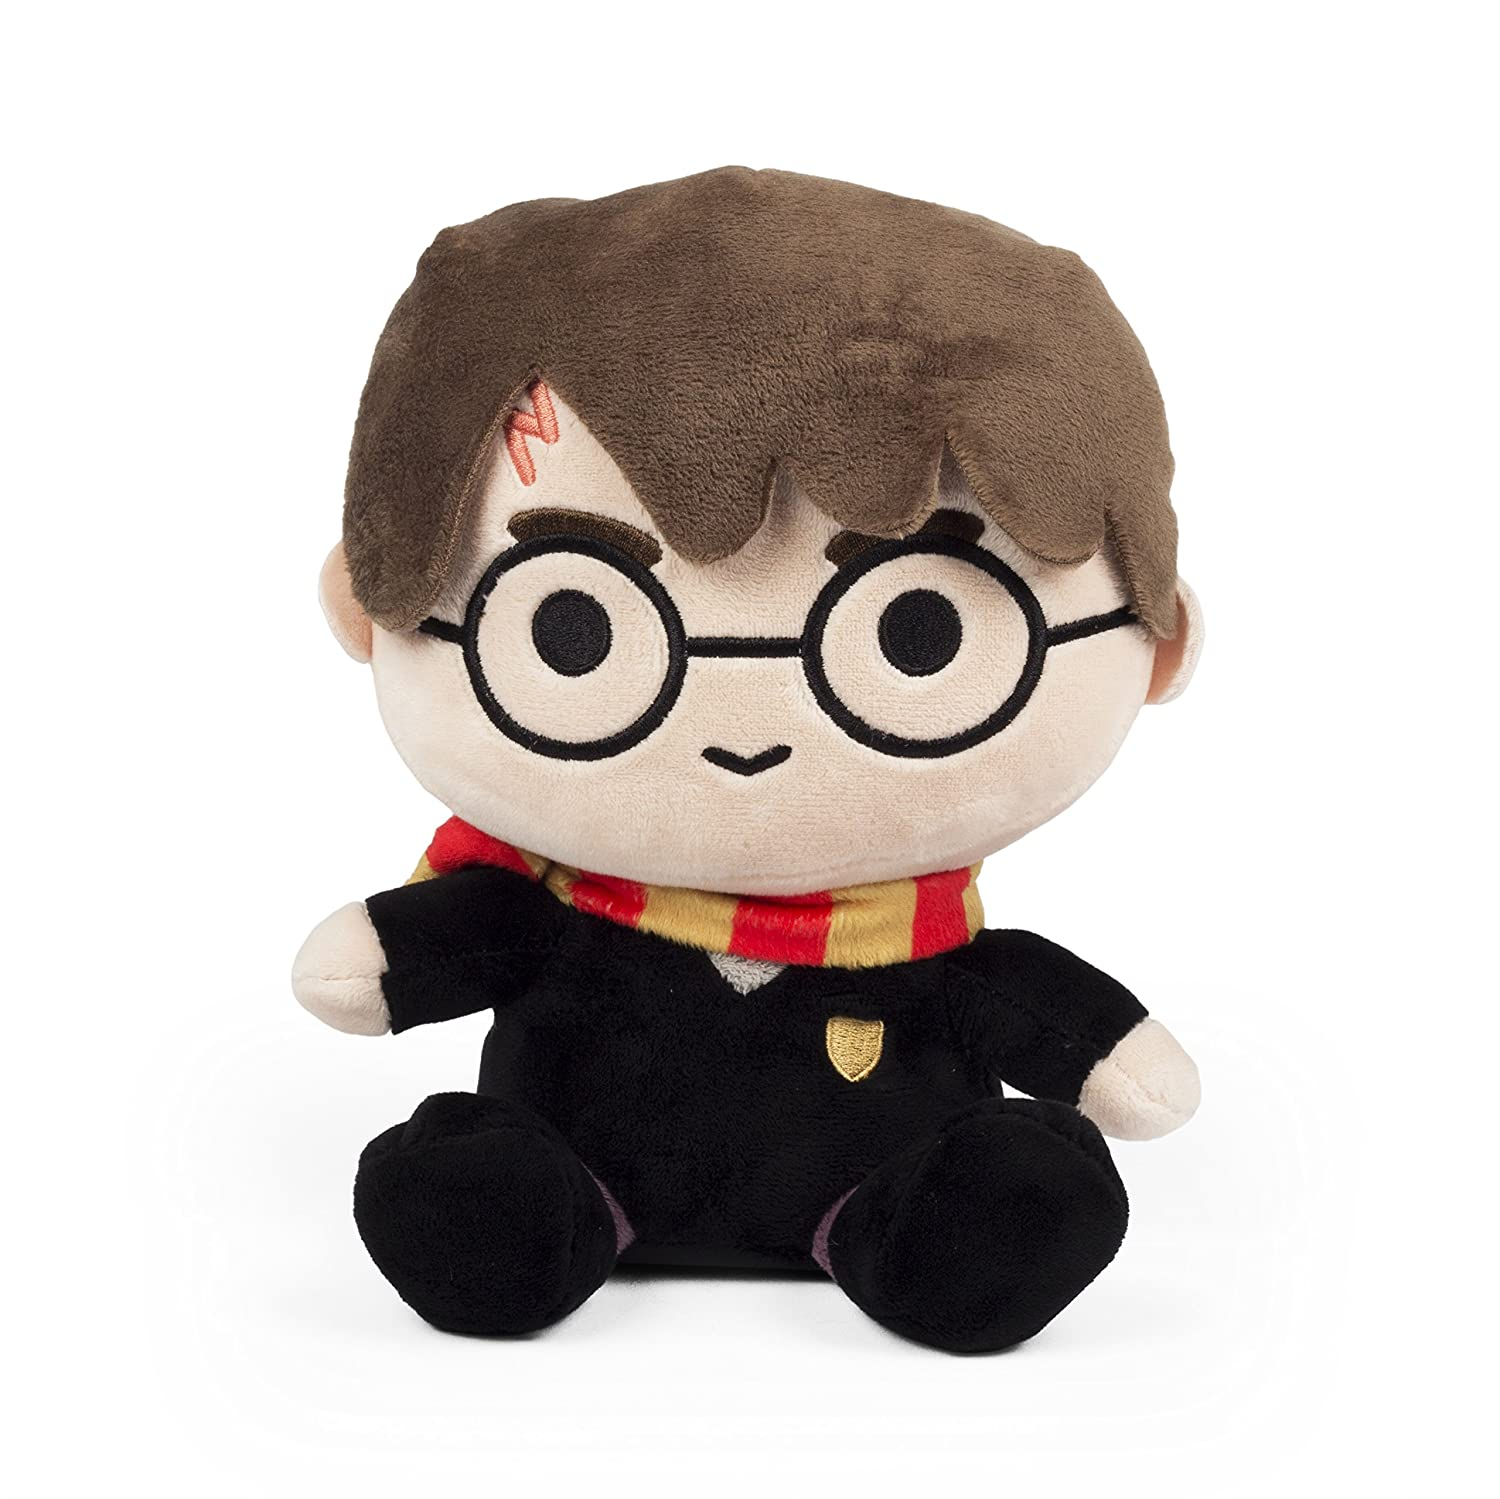 Fab Starpoint Harry Potter Hogwarts Plush Coin Money Bank For Kids by Fab Starpoint